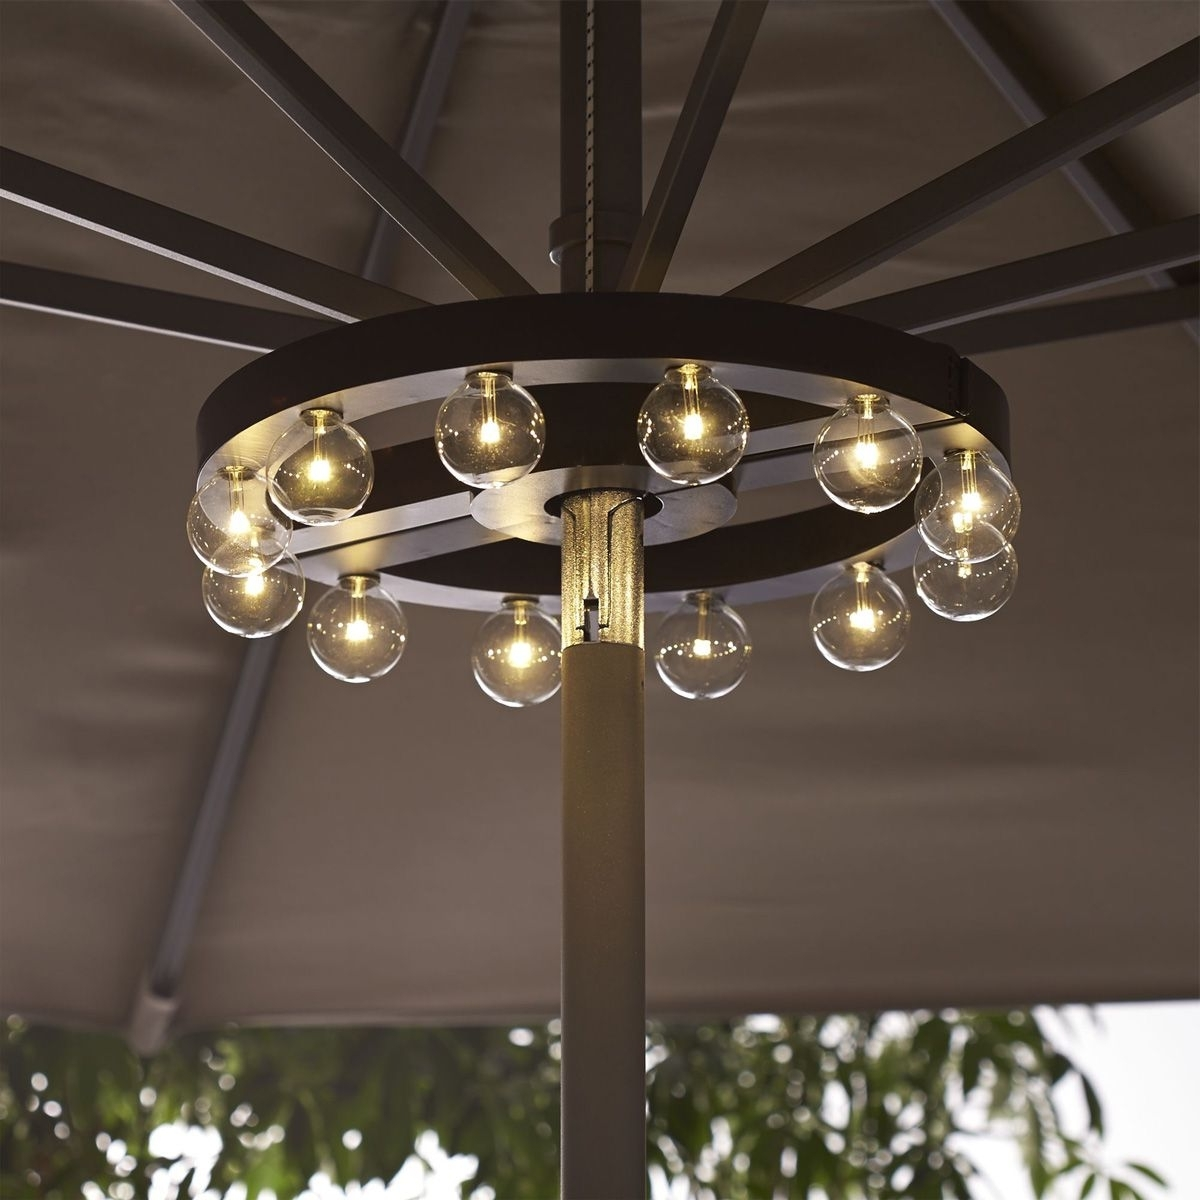 Get Outside For The Summer With Favorite Patio Umbrellas With Lights (View 6 of 20)